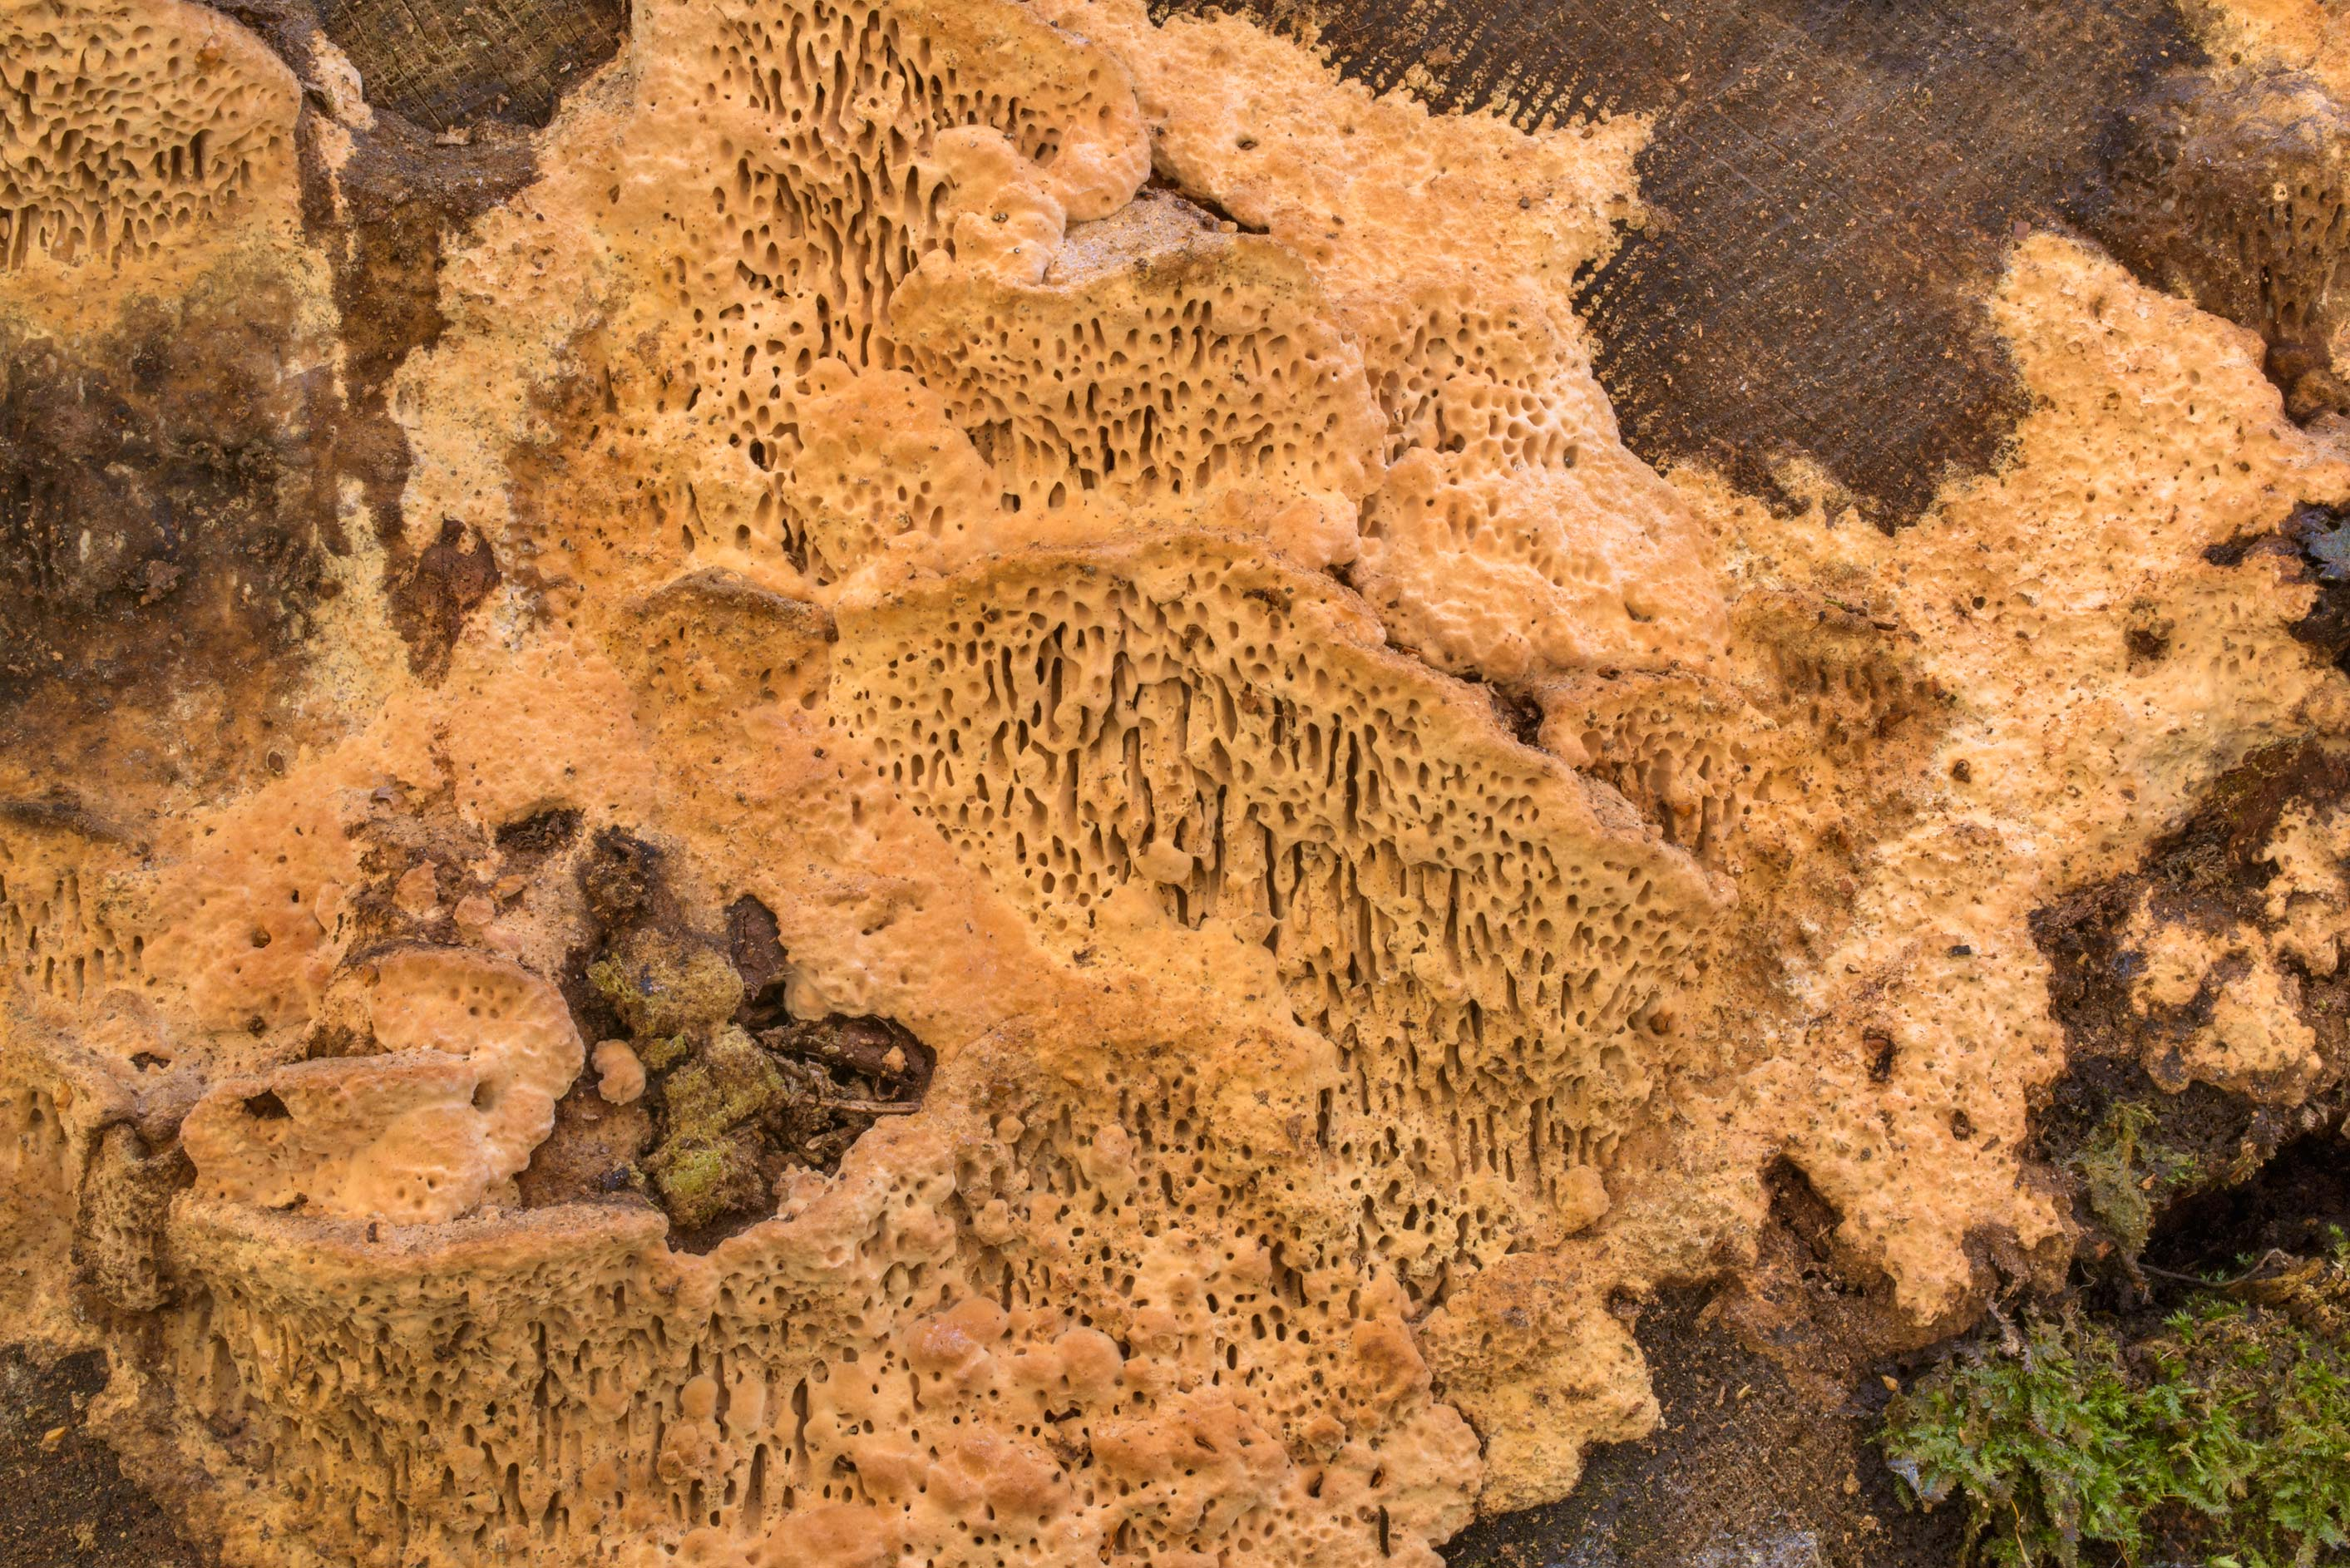 Maze-gill fungus (oak mazegill mushroom, Daedalea...Nos, west from St.Petersburg. Russia